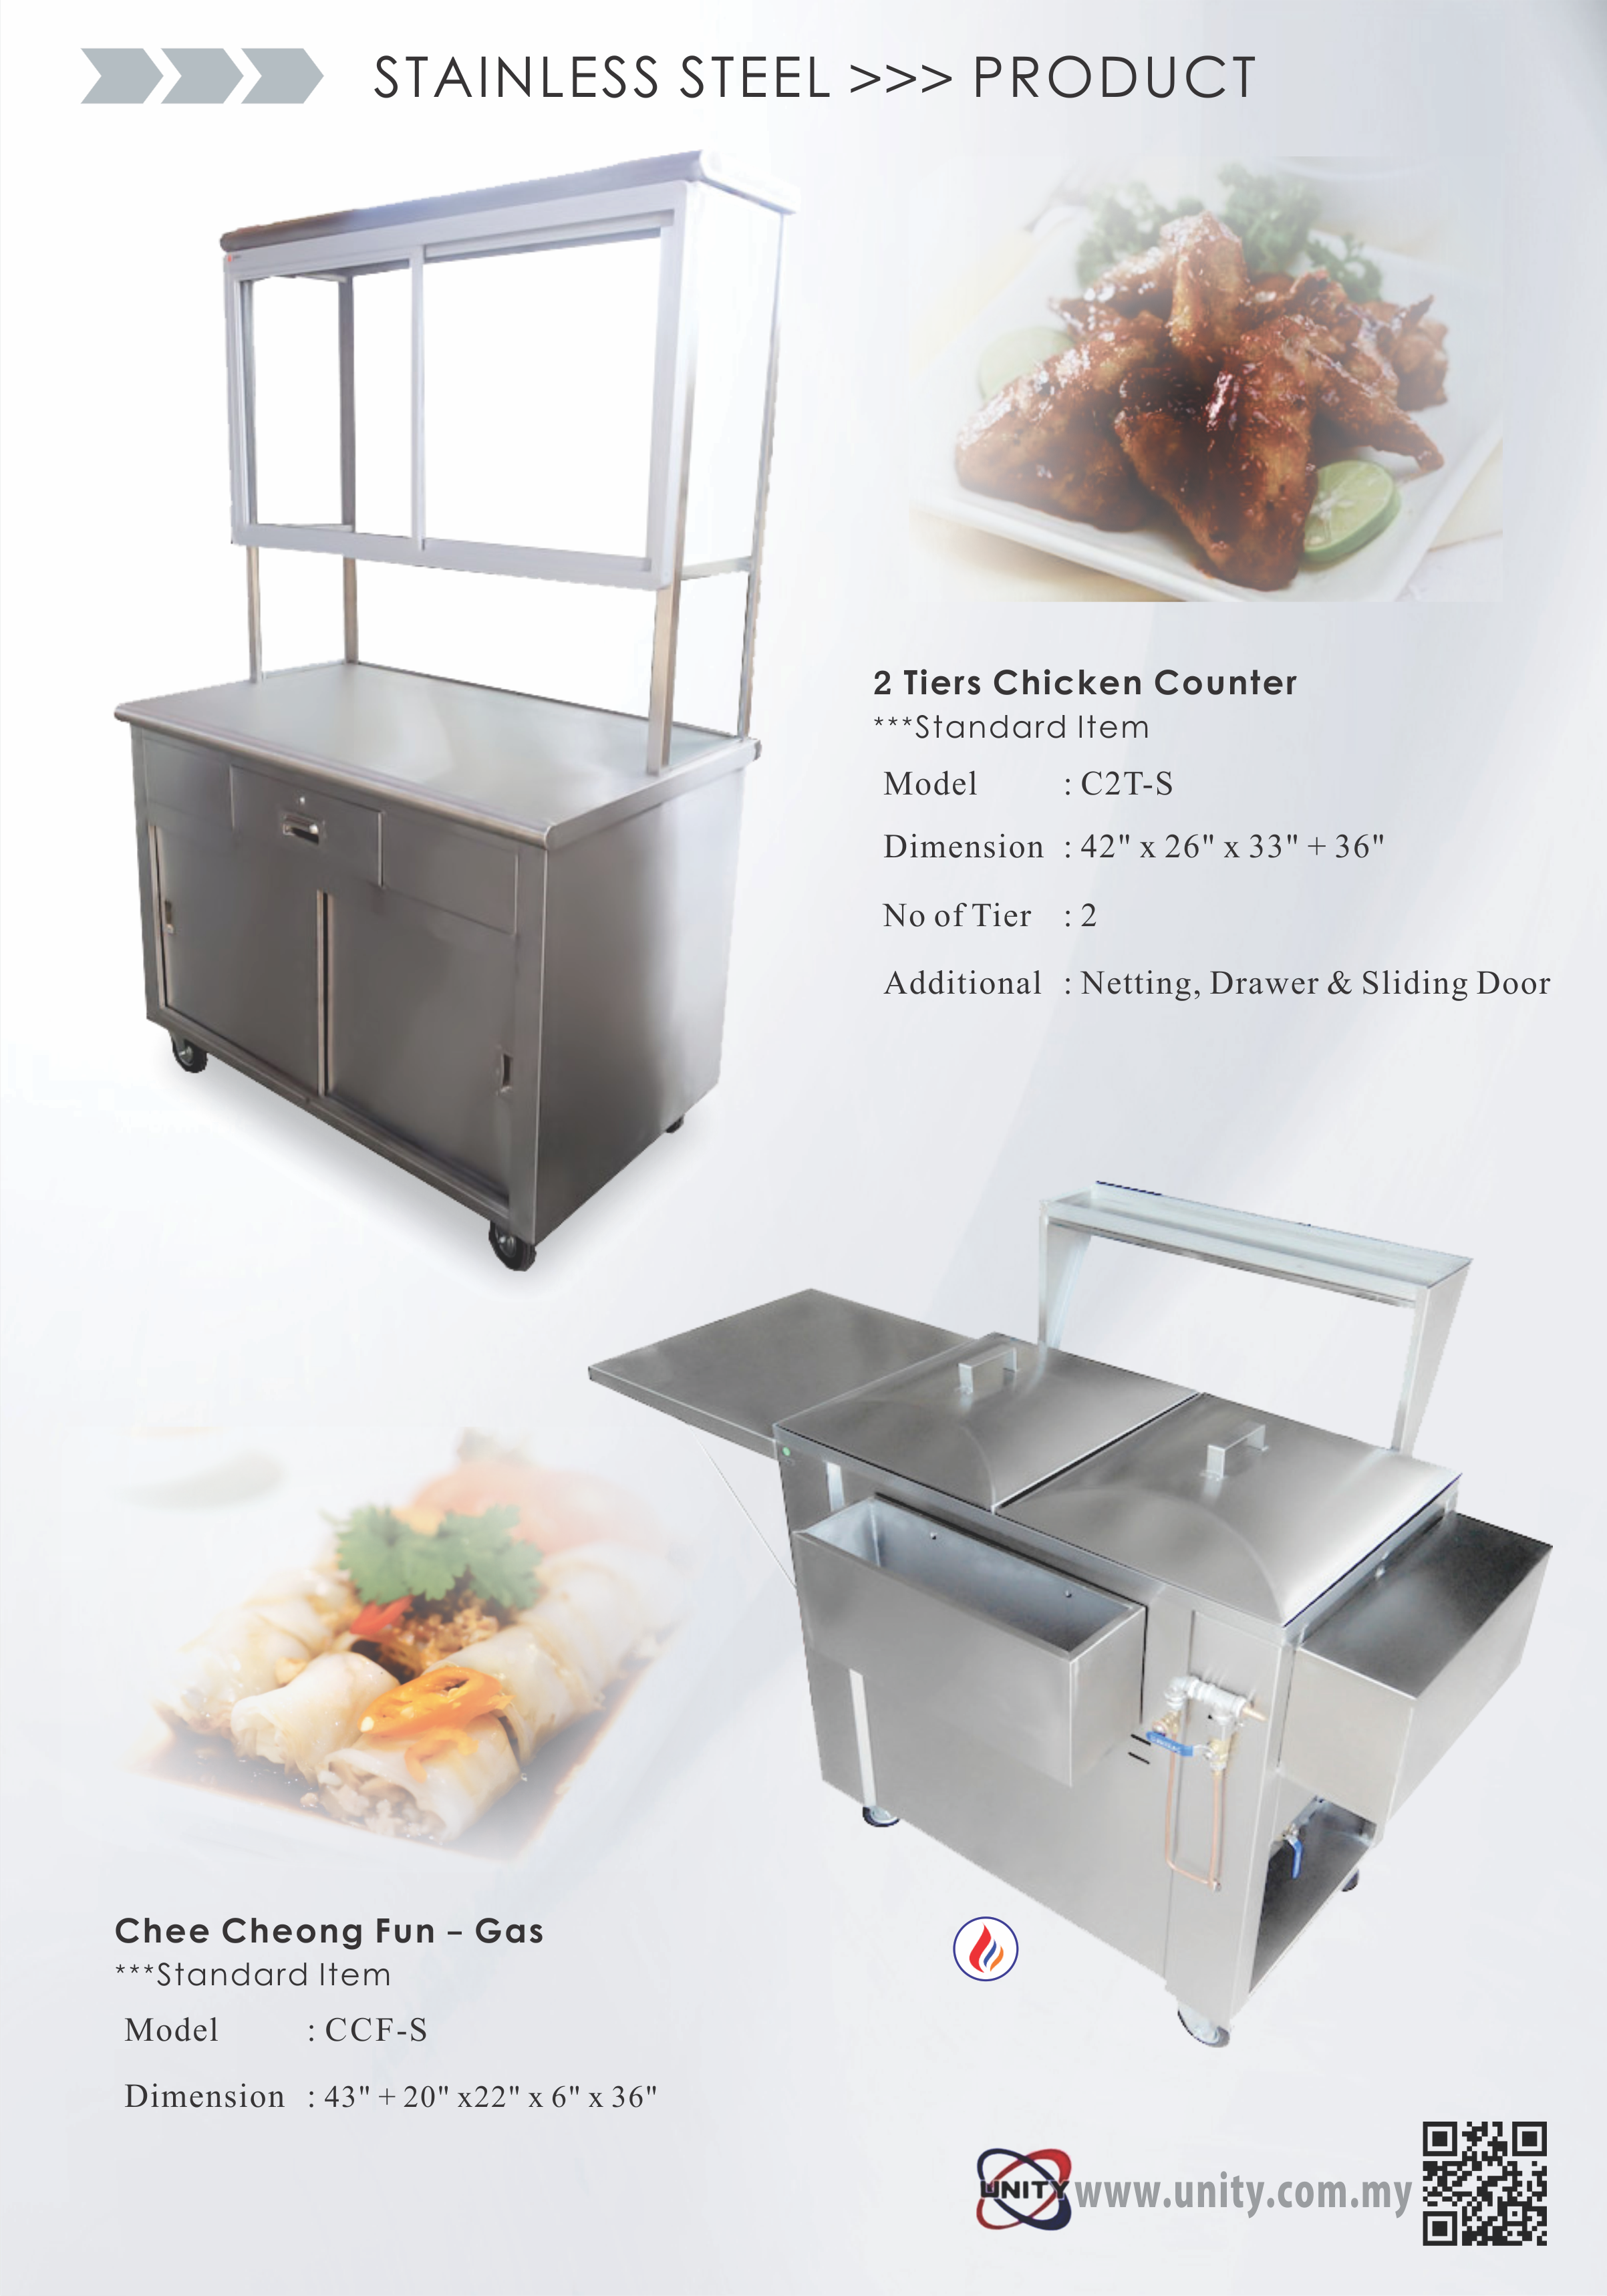 3 Tier Chicken Counter & Chee Cheong Fun Counter